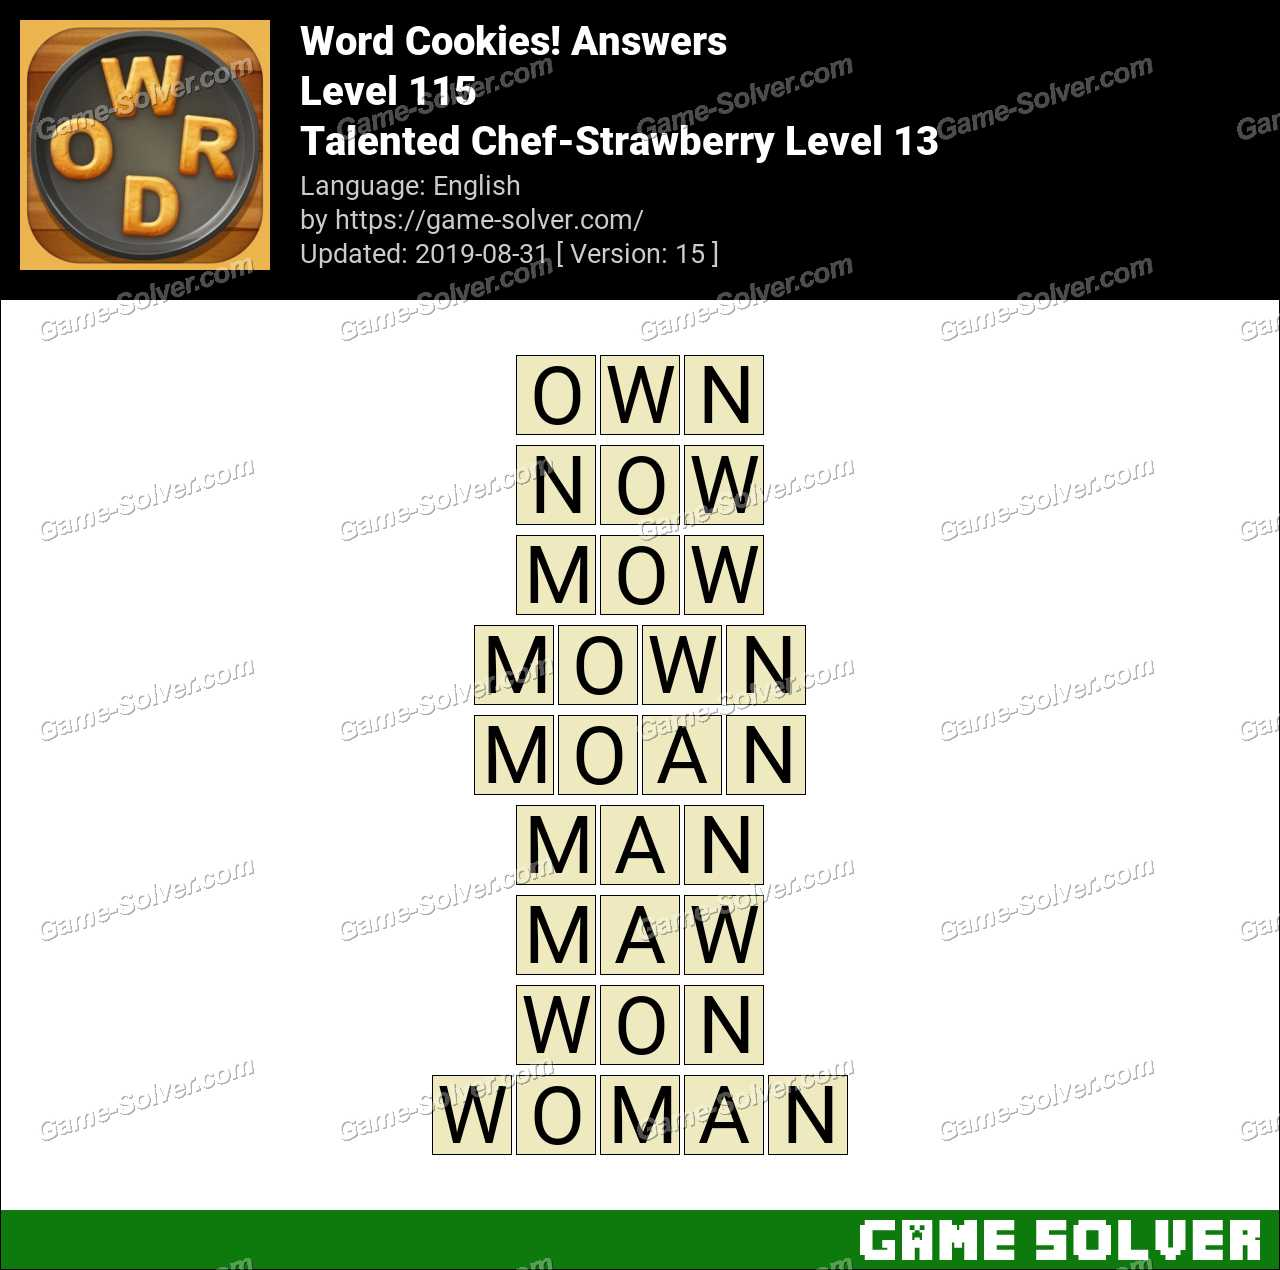 Word Cookies Talented Chef-Strawberry Level 13 Answers